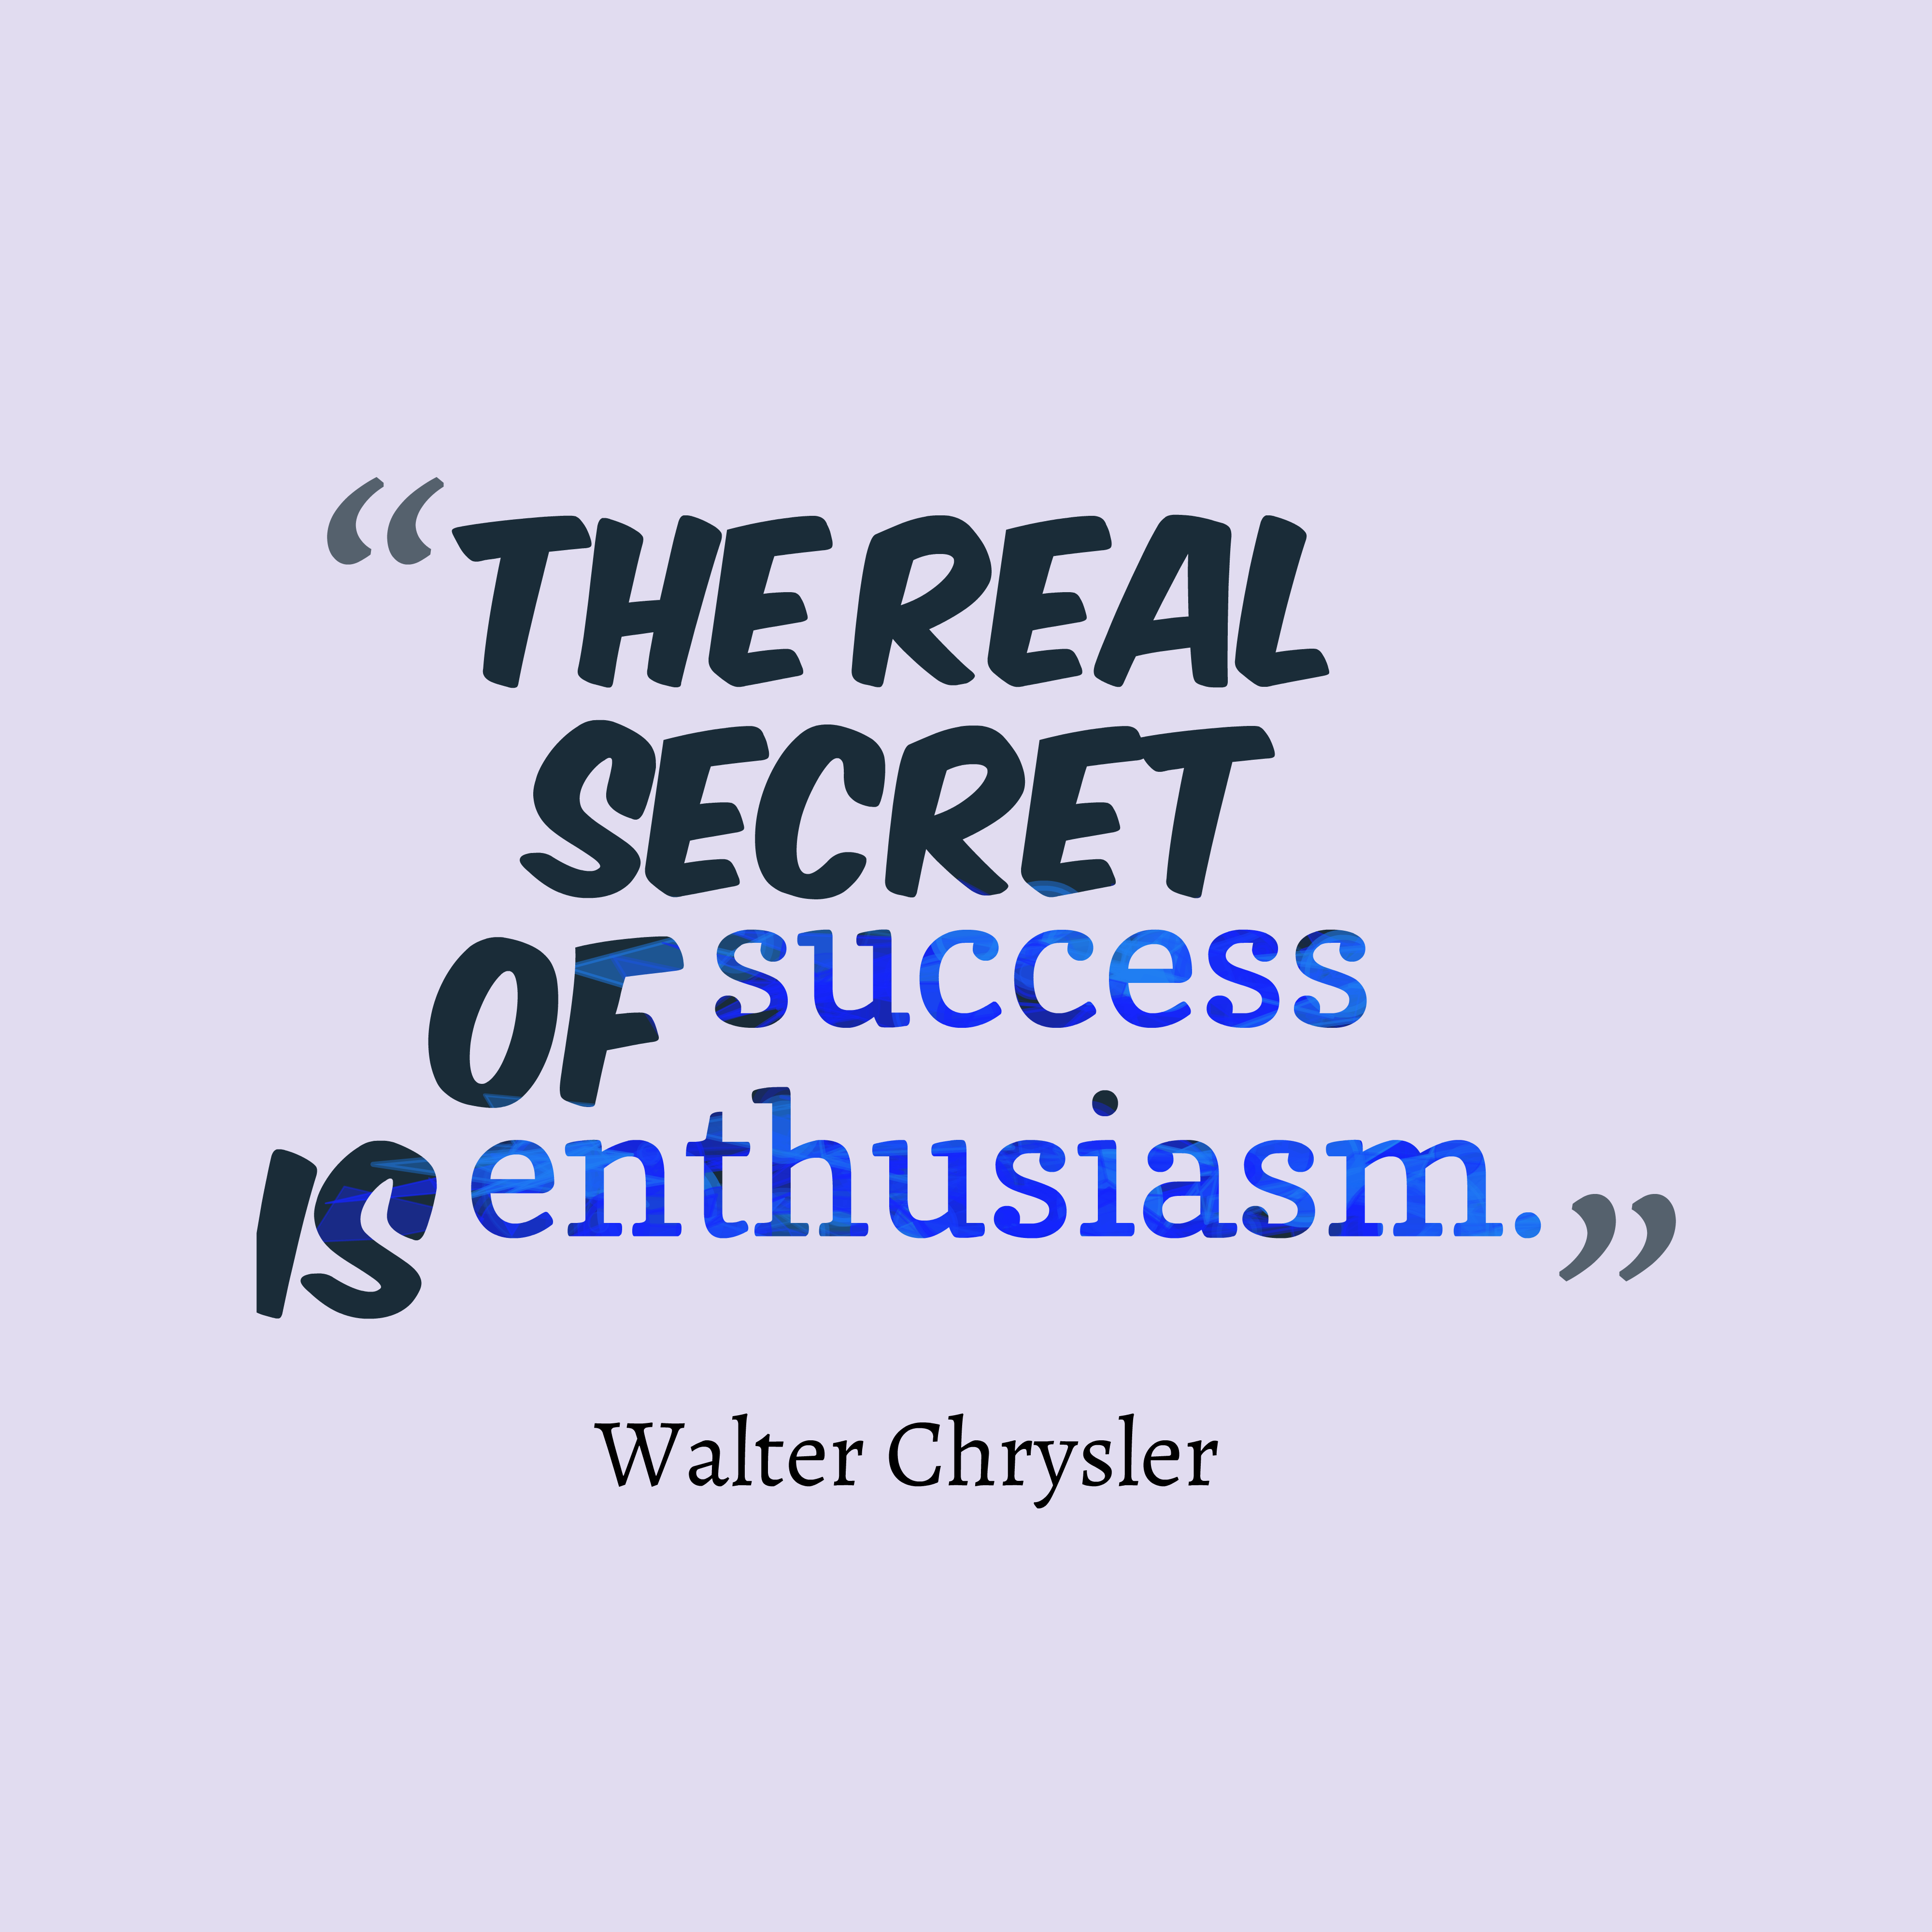 Create Quotes picture for high resolution from Walter Chrysler